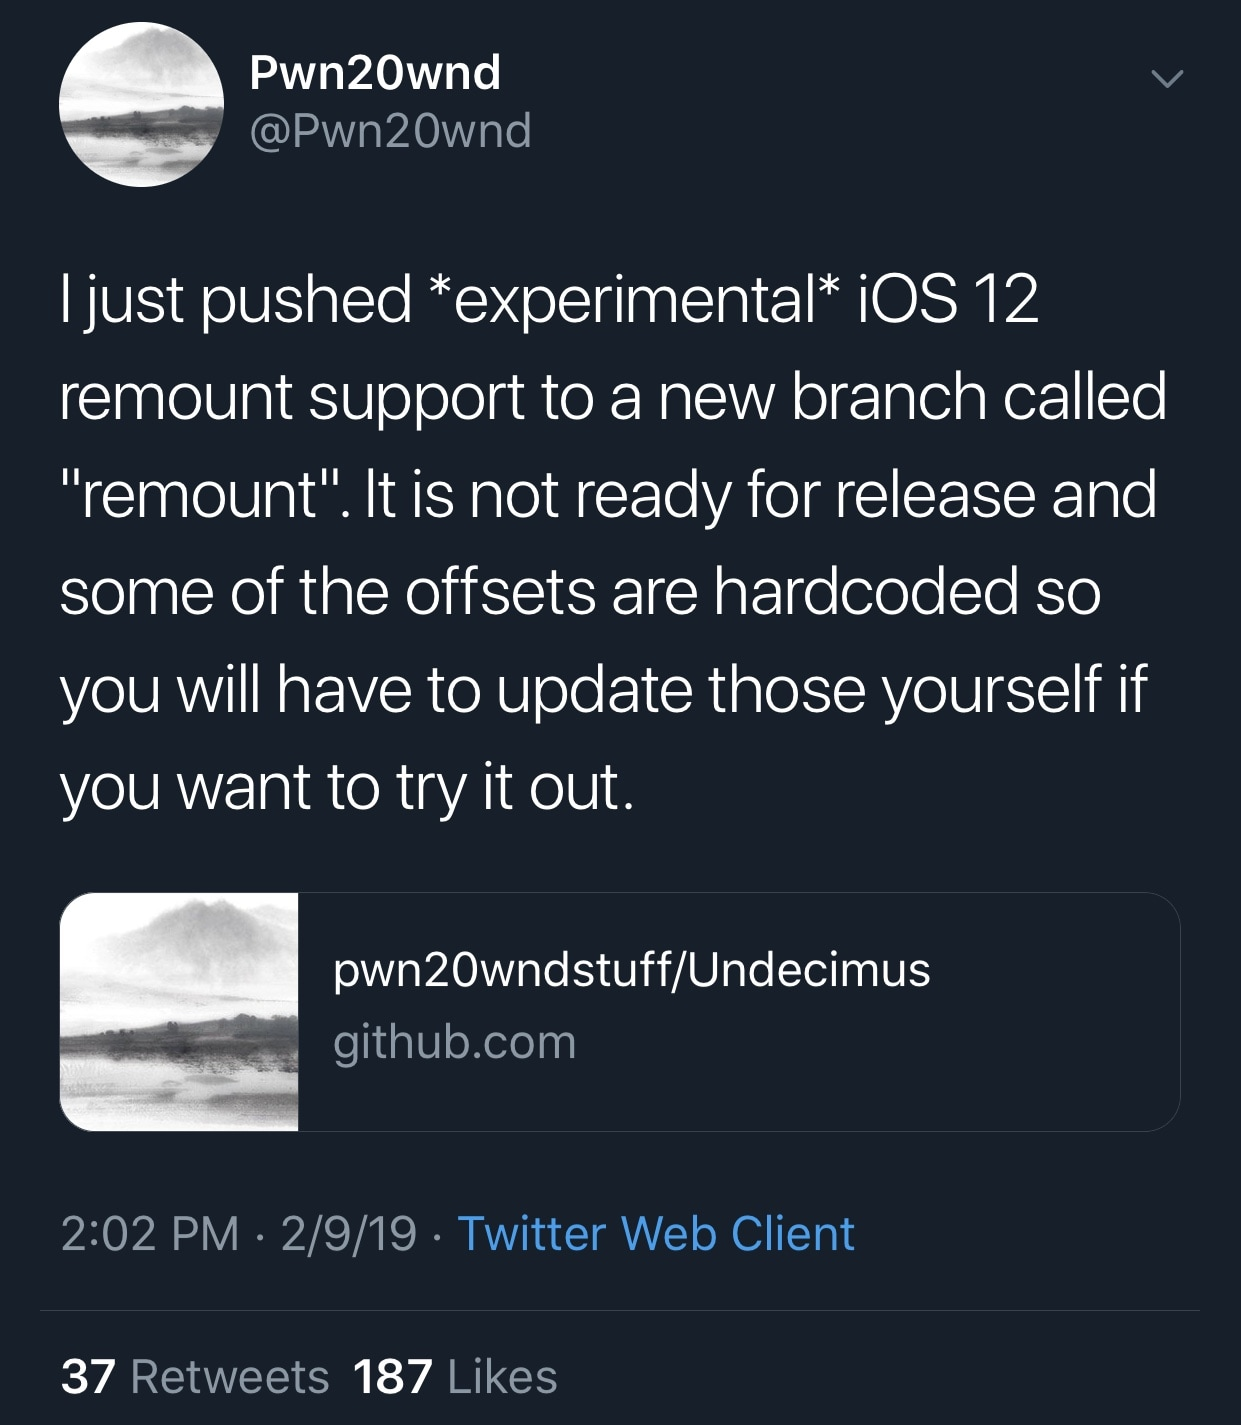 A rootfs remount is being released for iOS 12, raising hope